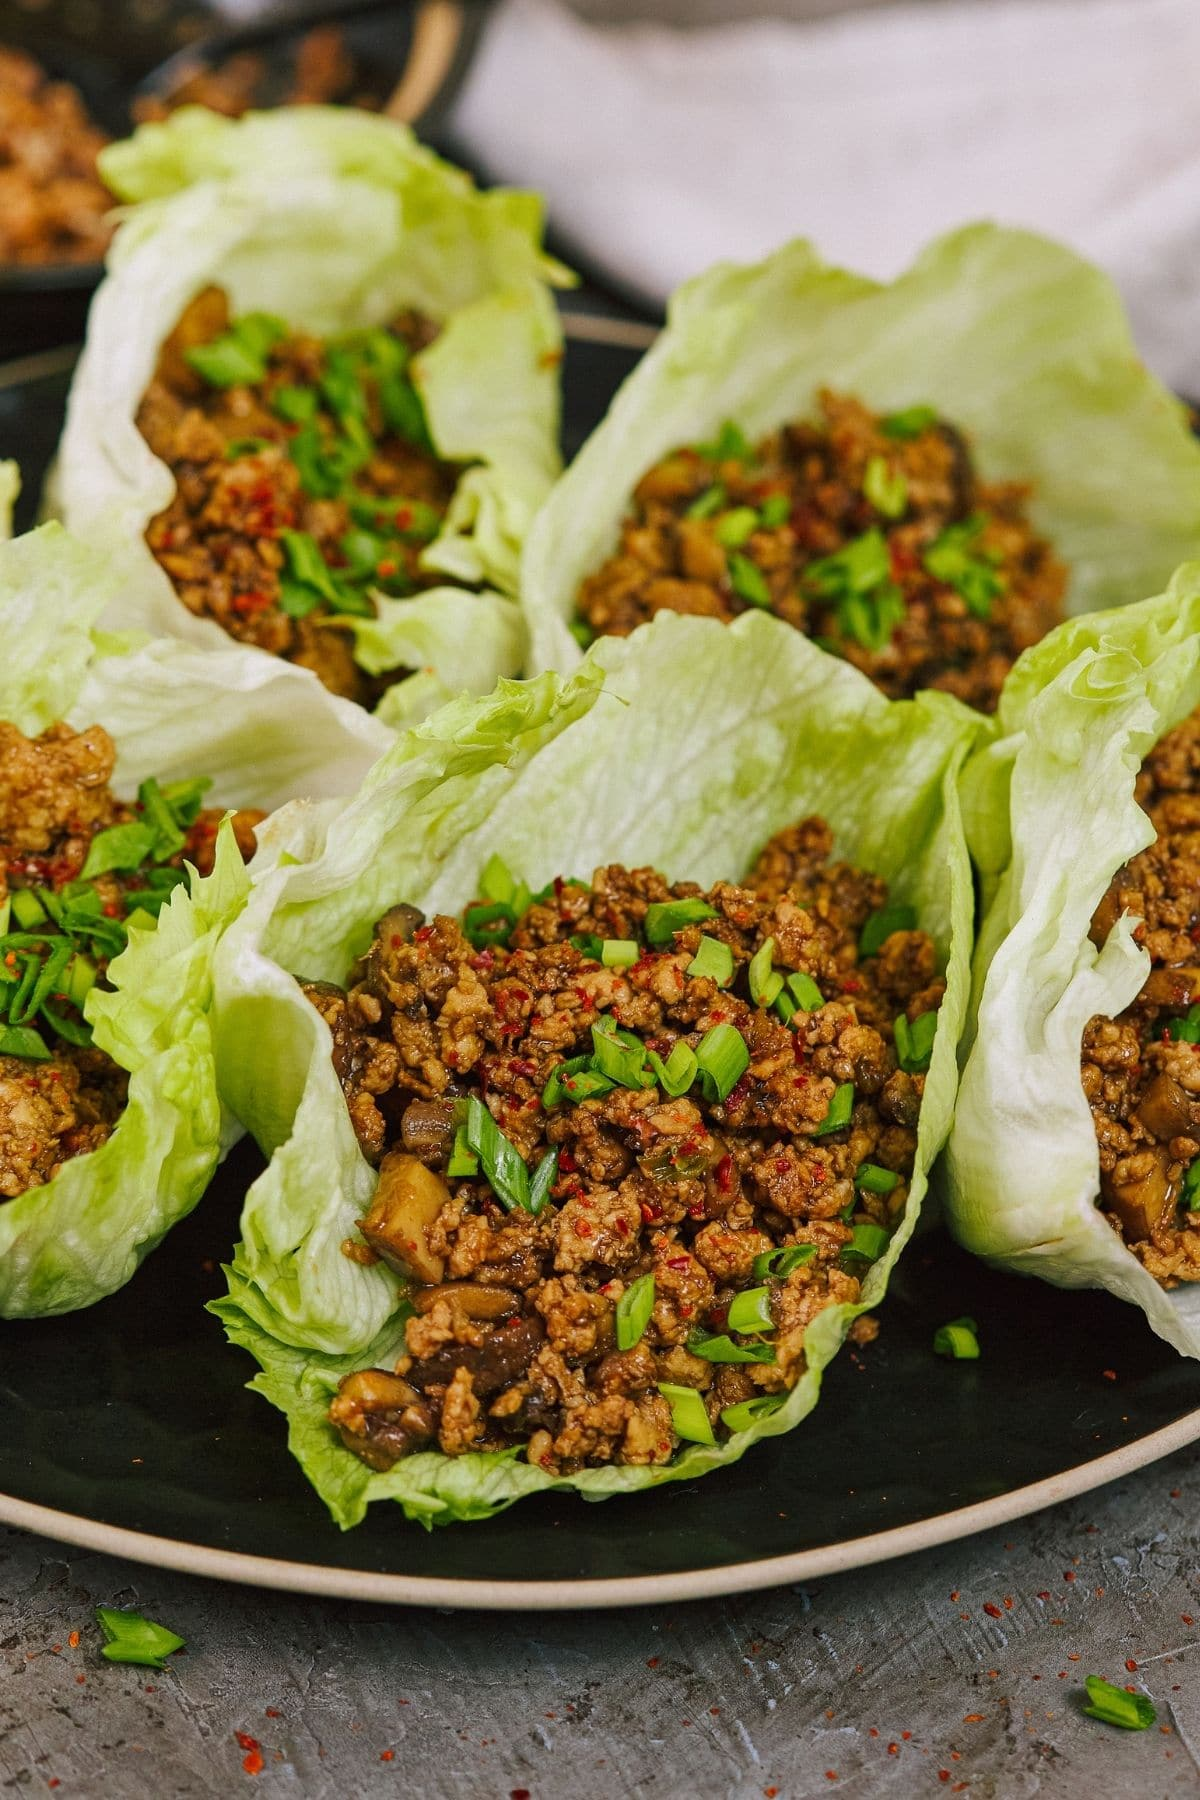 Black plate of lettuce wraps sitting on brown counter